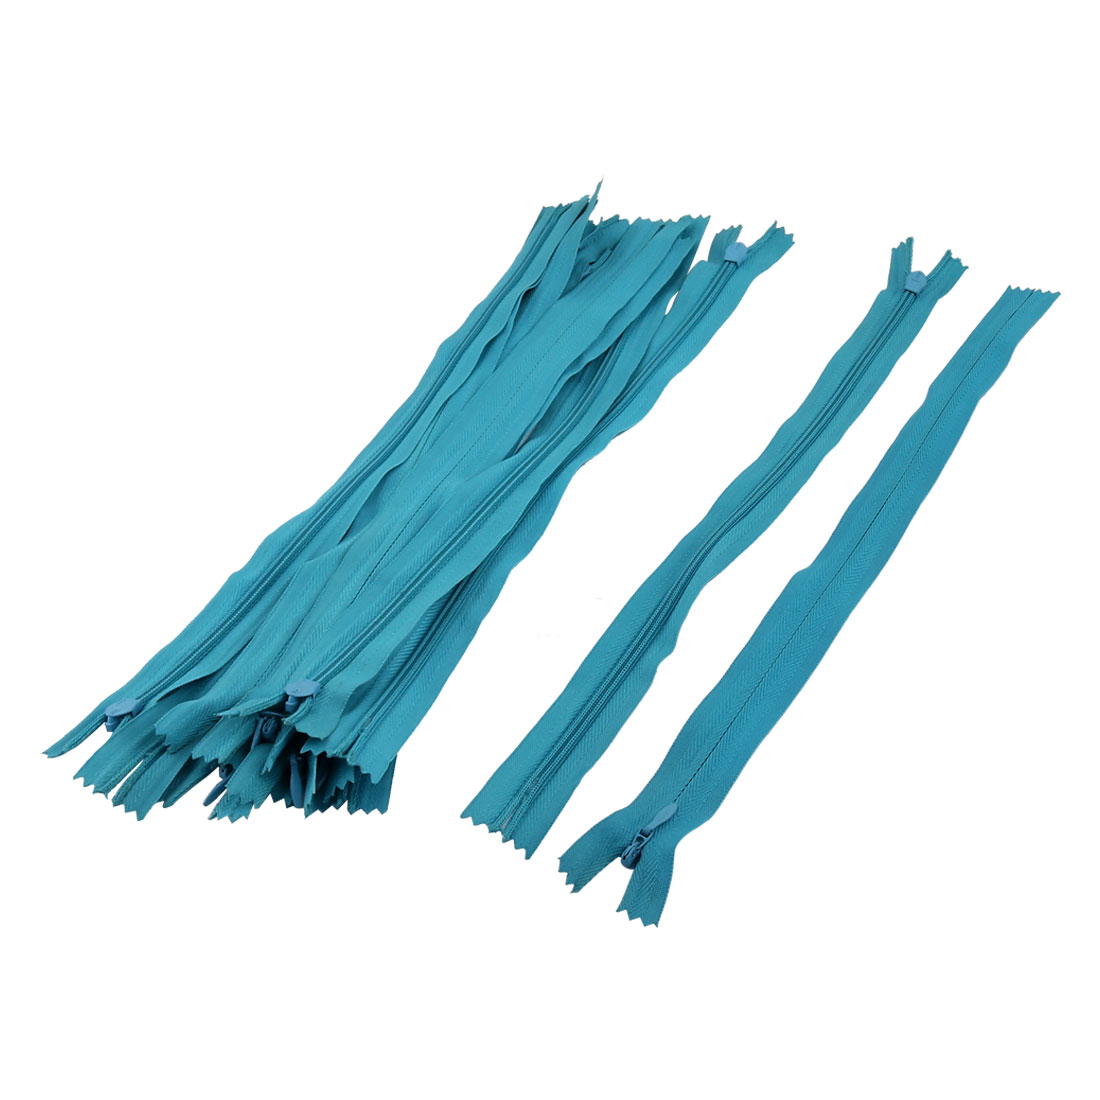 Tailor Sewer Nylon Conceal Invisible Zippers Sewing Tool Light Blue 30cm Length 12PCS